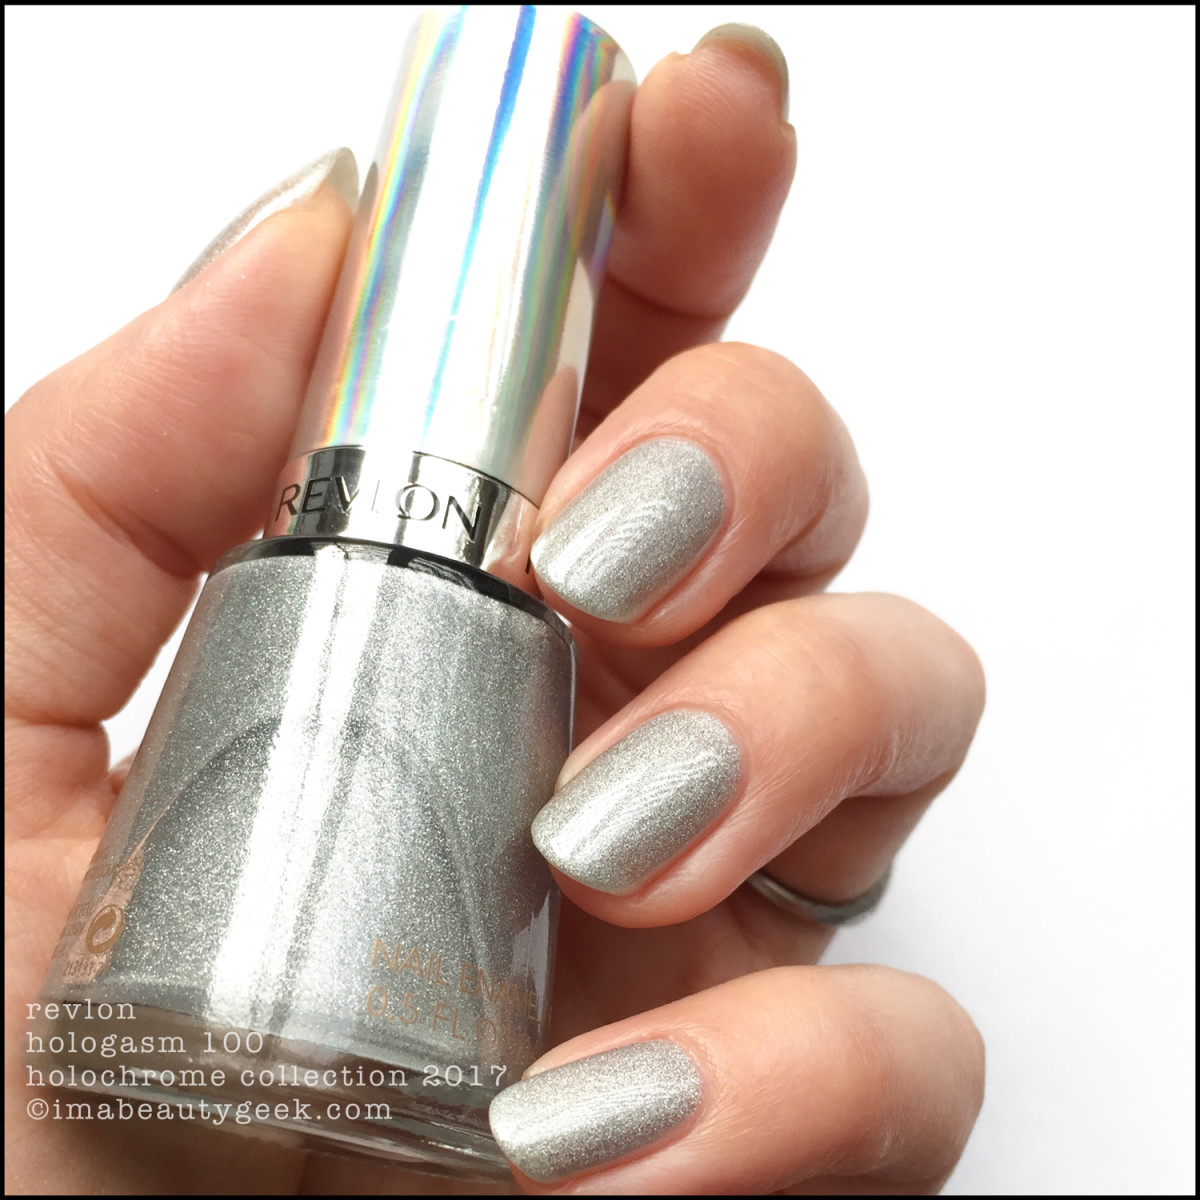 Revlon Hologasm 110 Holochrome Collection Swatches